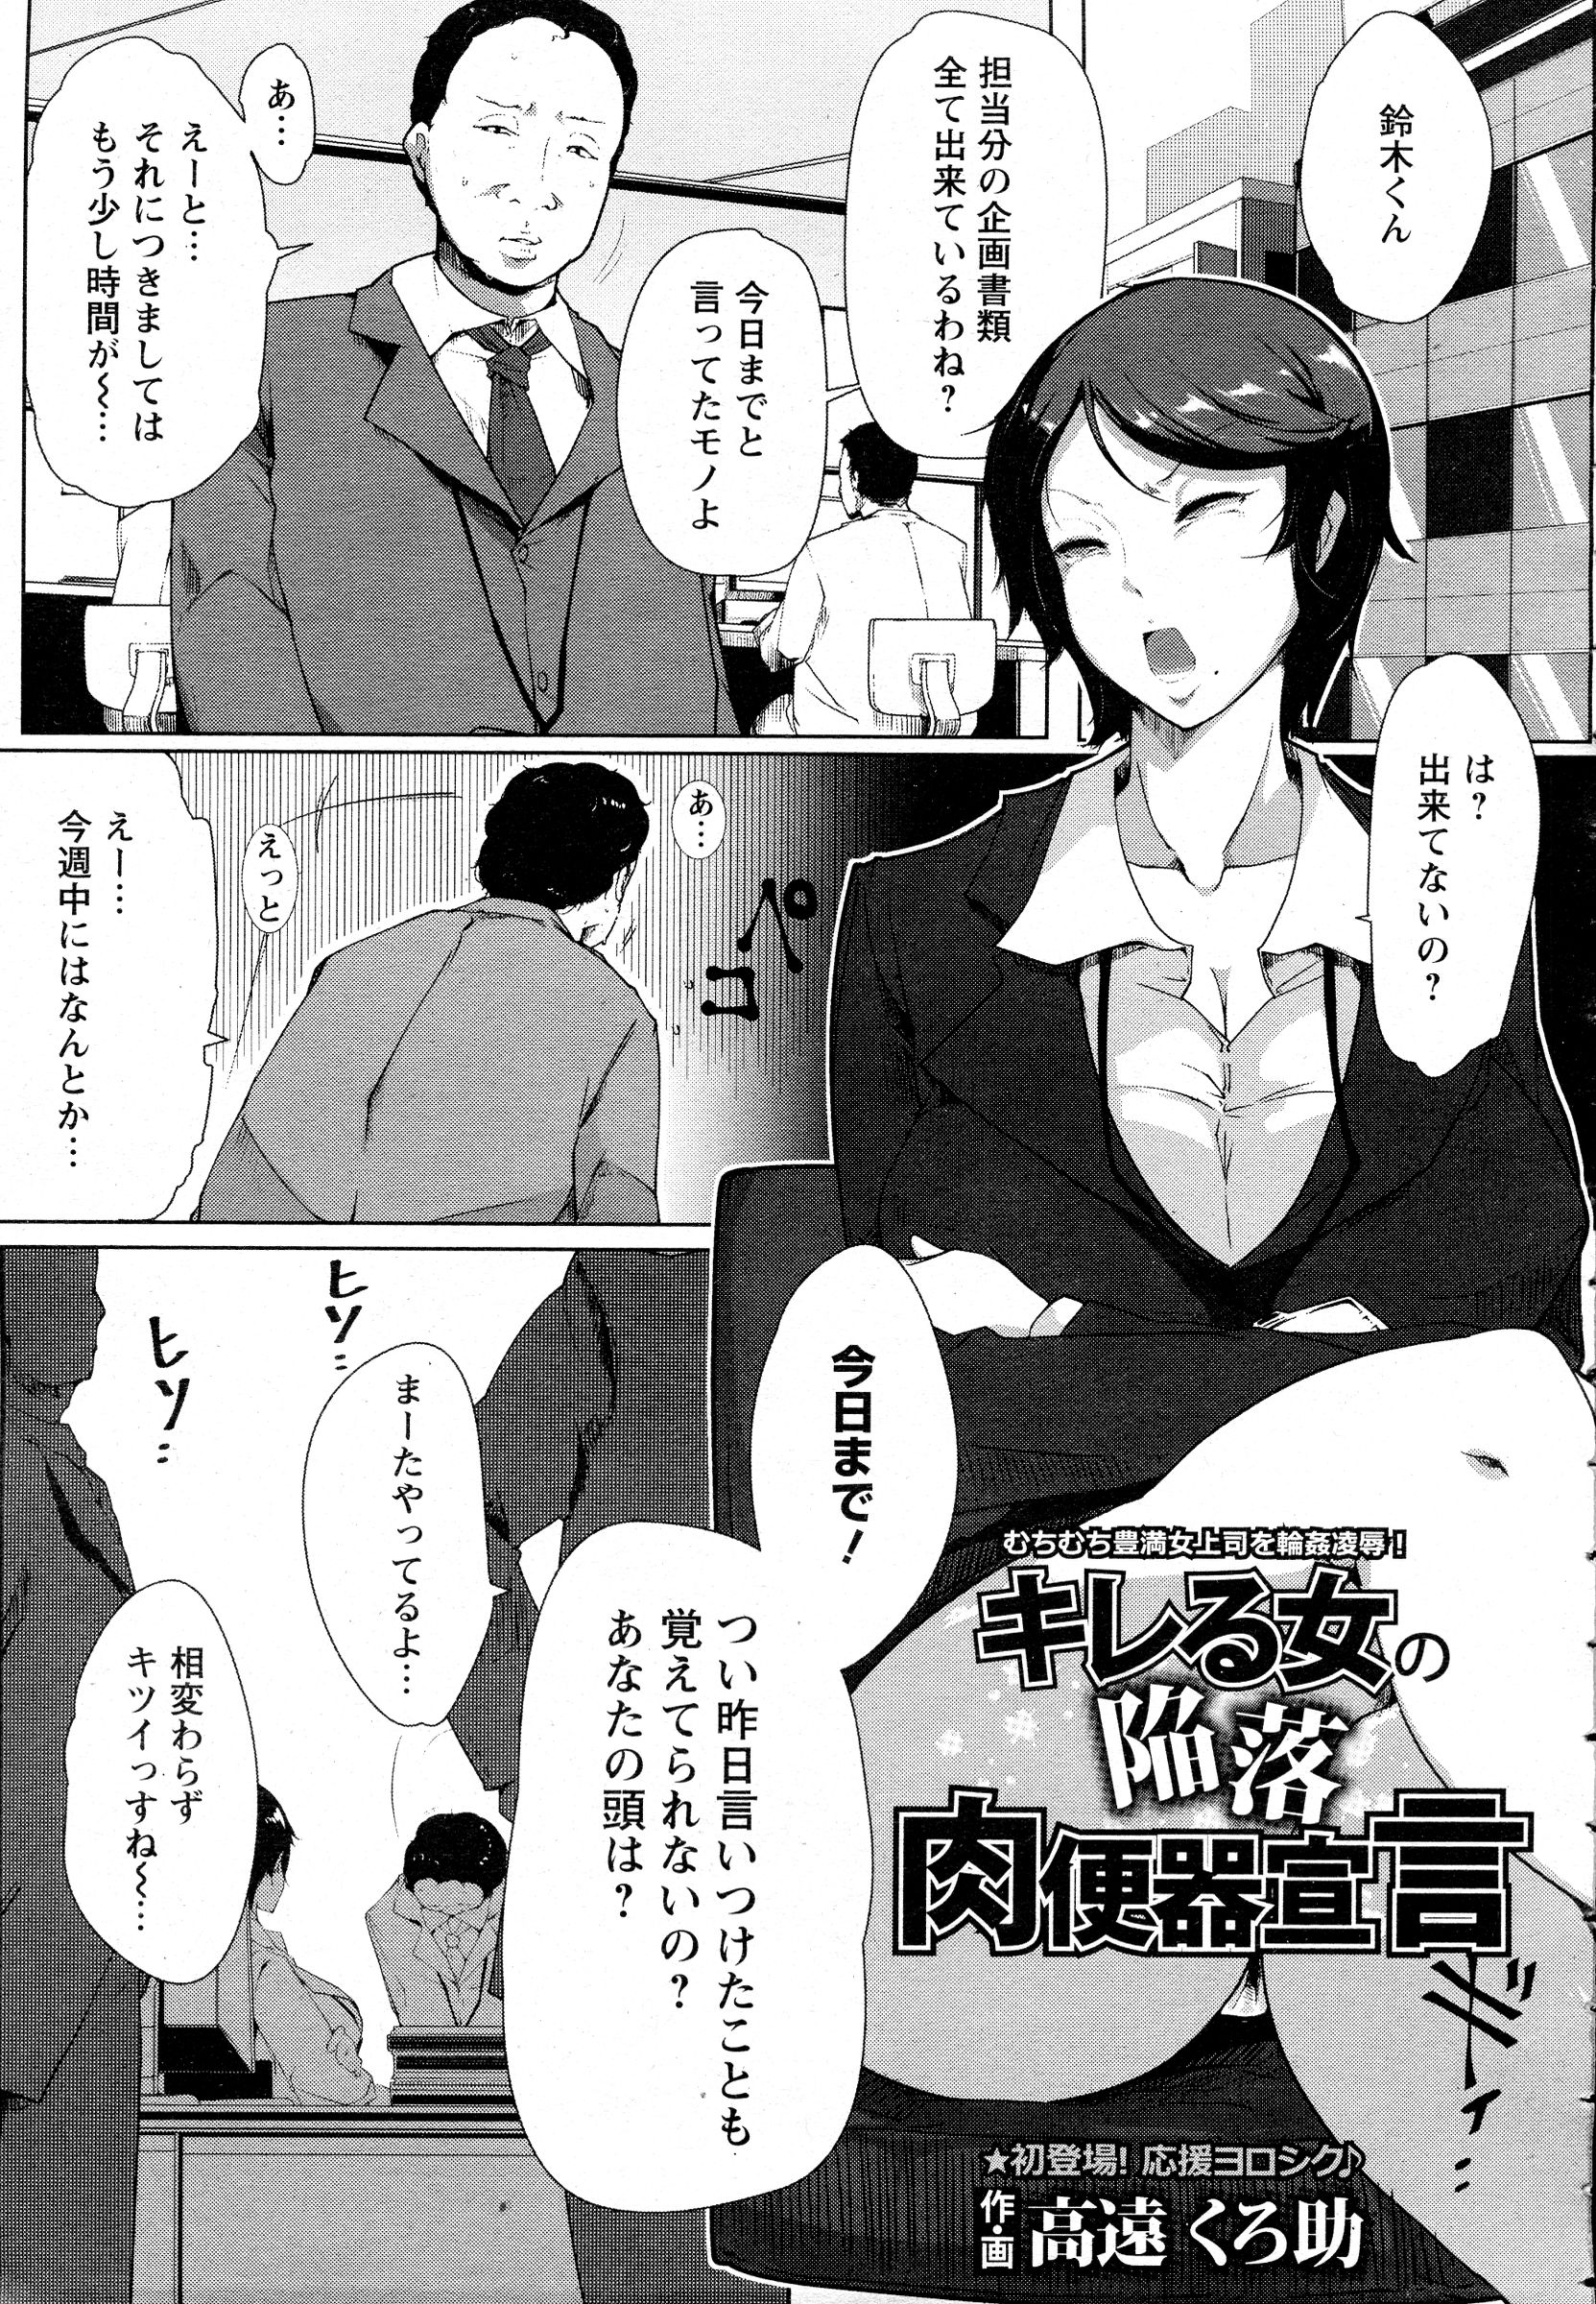 【エロ漫画】身体はスケベなくせに高飛車な爆乳OLの上司がストレス発散セックスをしていた。秘密を知ってみんなの共有肉便器にする事にして、ひょっとこフェラからアヘイキさせる